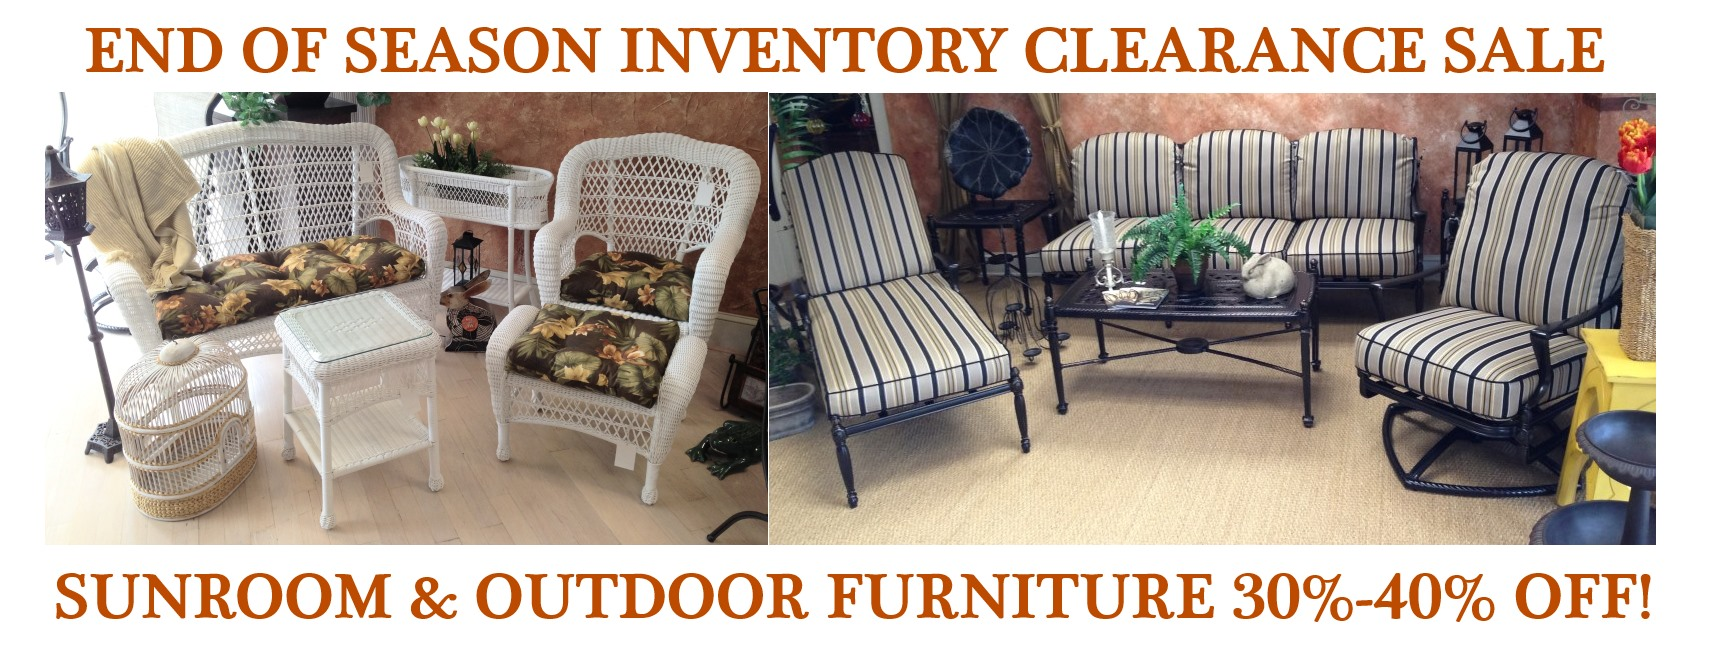 Sunroom Clearance For Fall Flyer Furniture Finesse York Pa Furniture Store